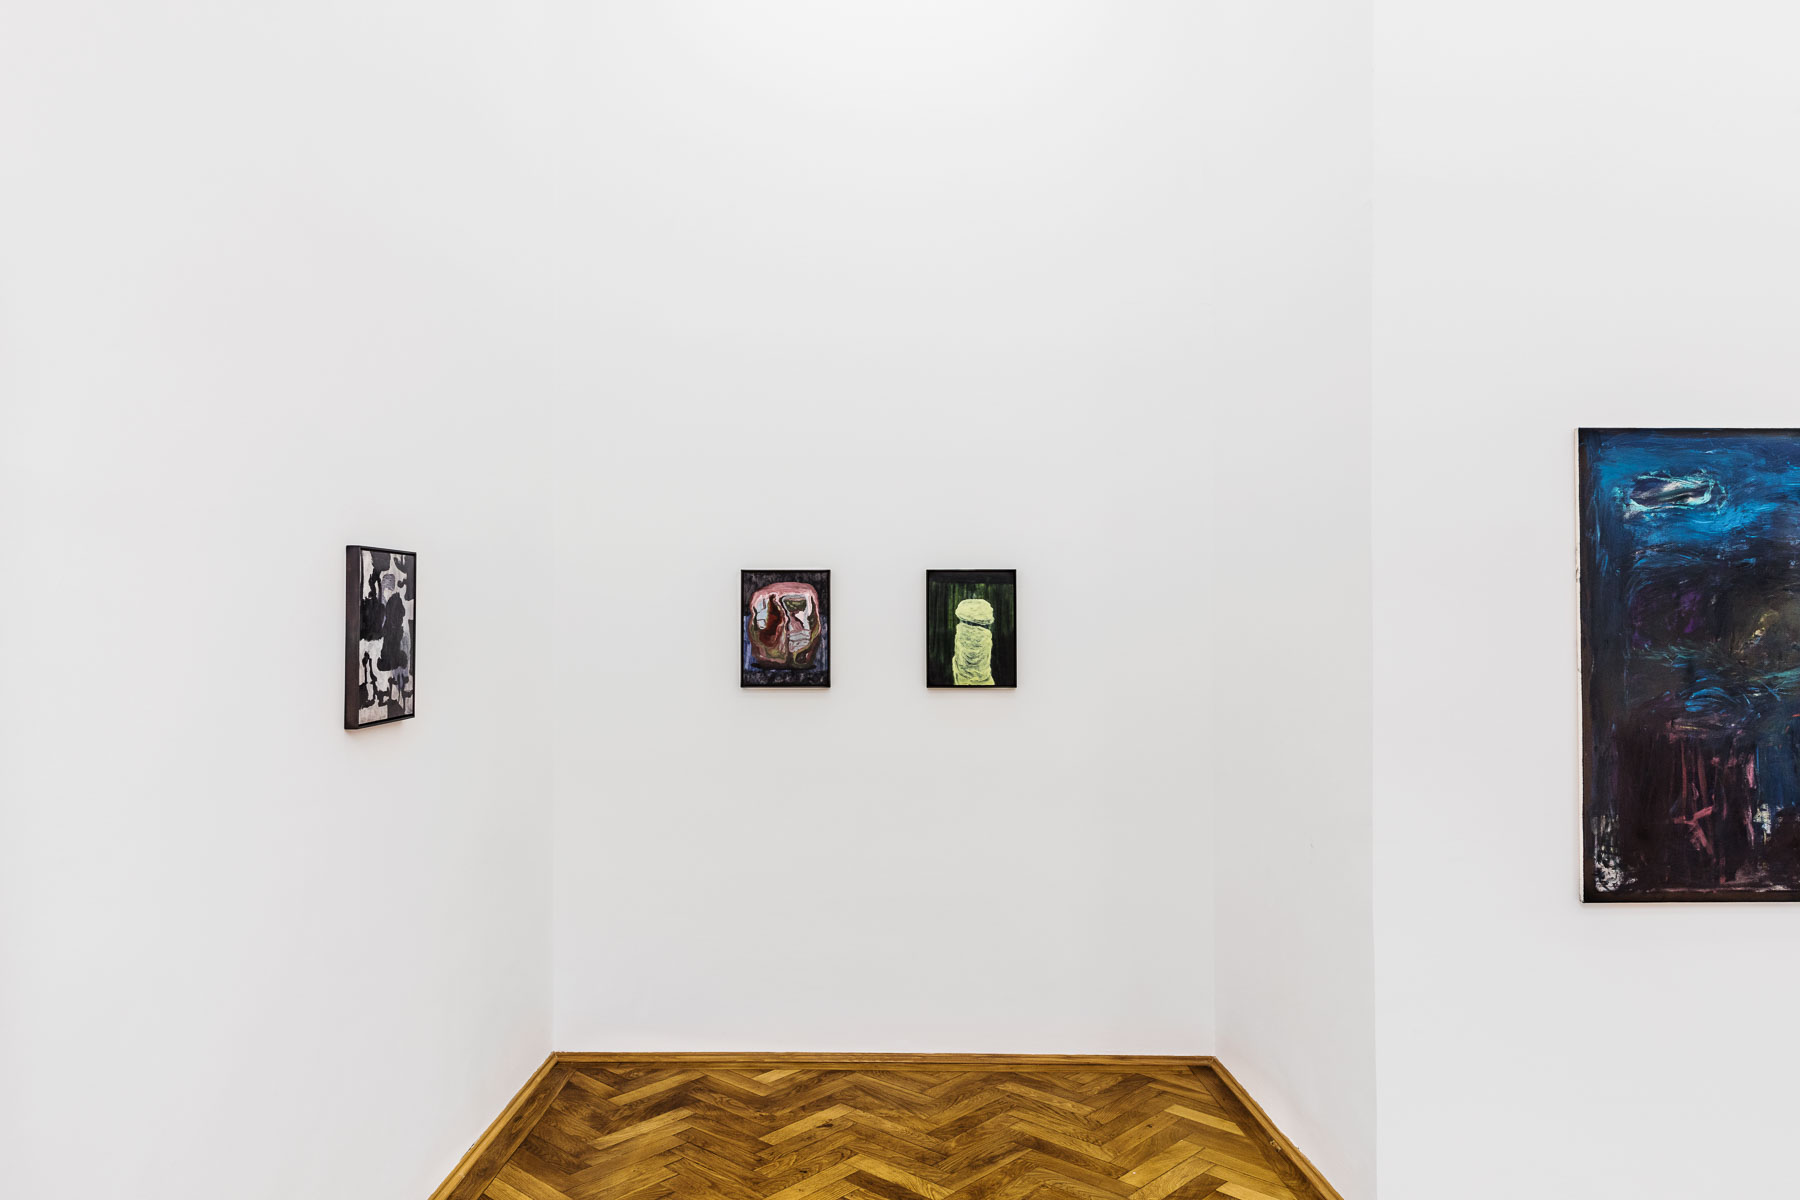 Veronika Hilger, Nacht, installation view